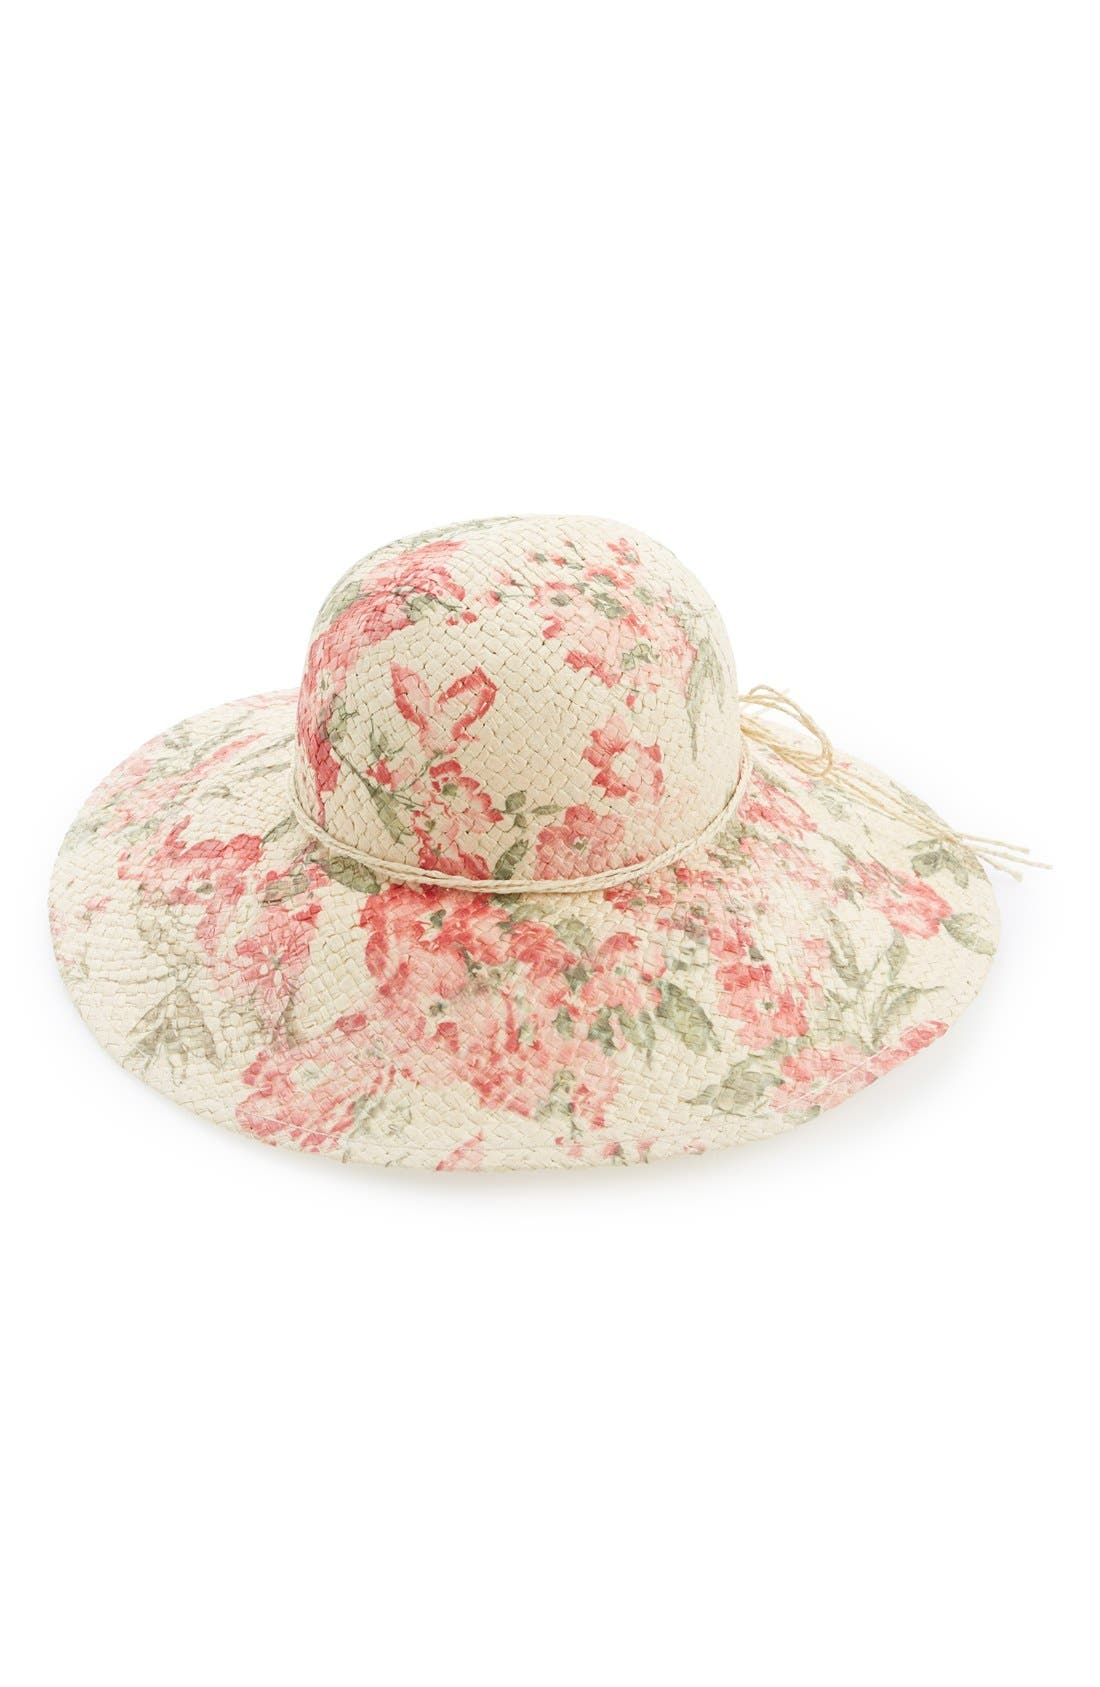 Alternate Image 1 Selected - David & Young Floral Print Floppy Straw Hat